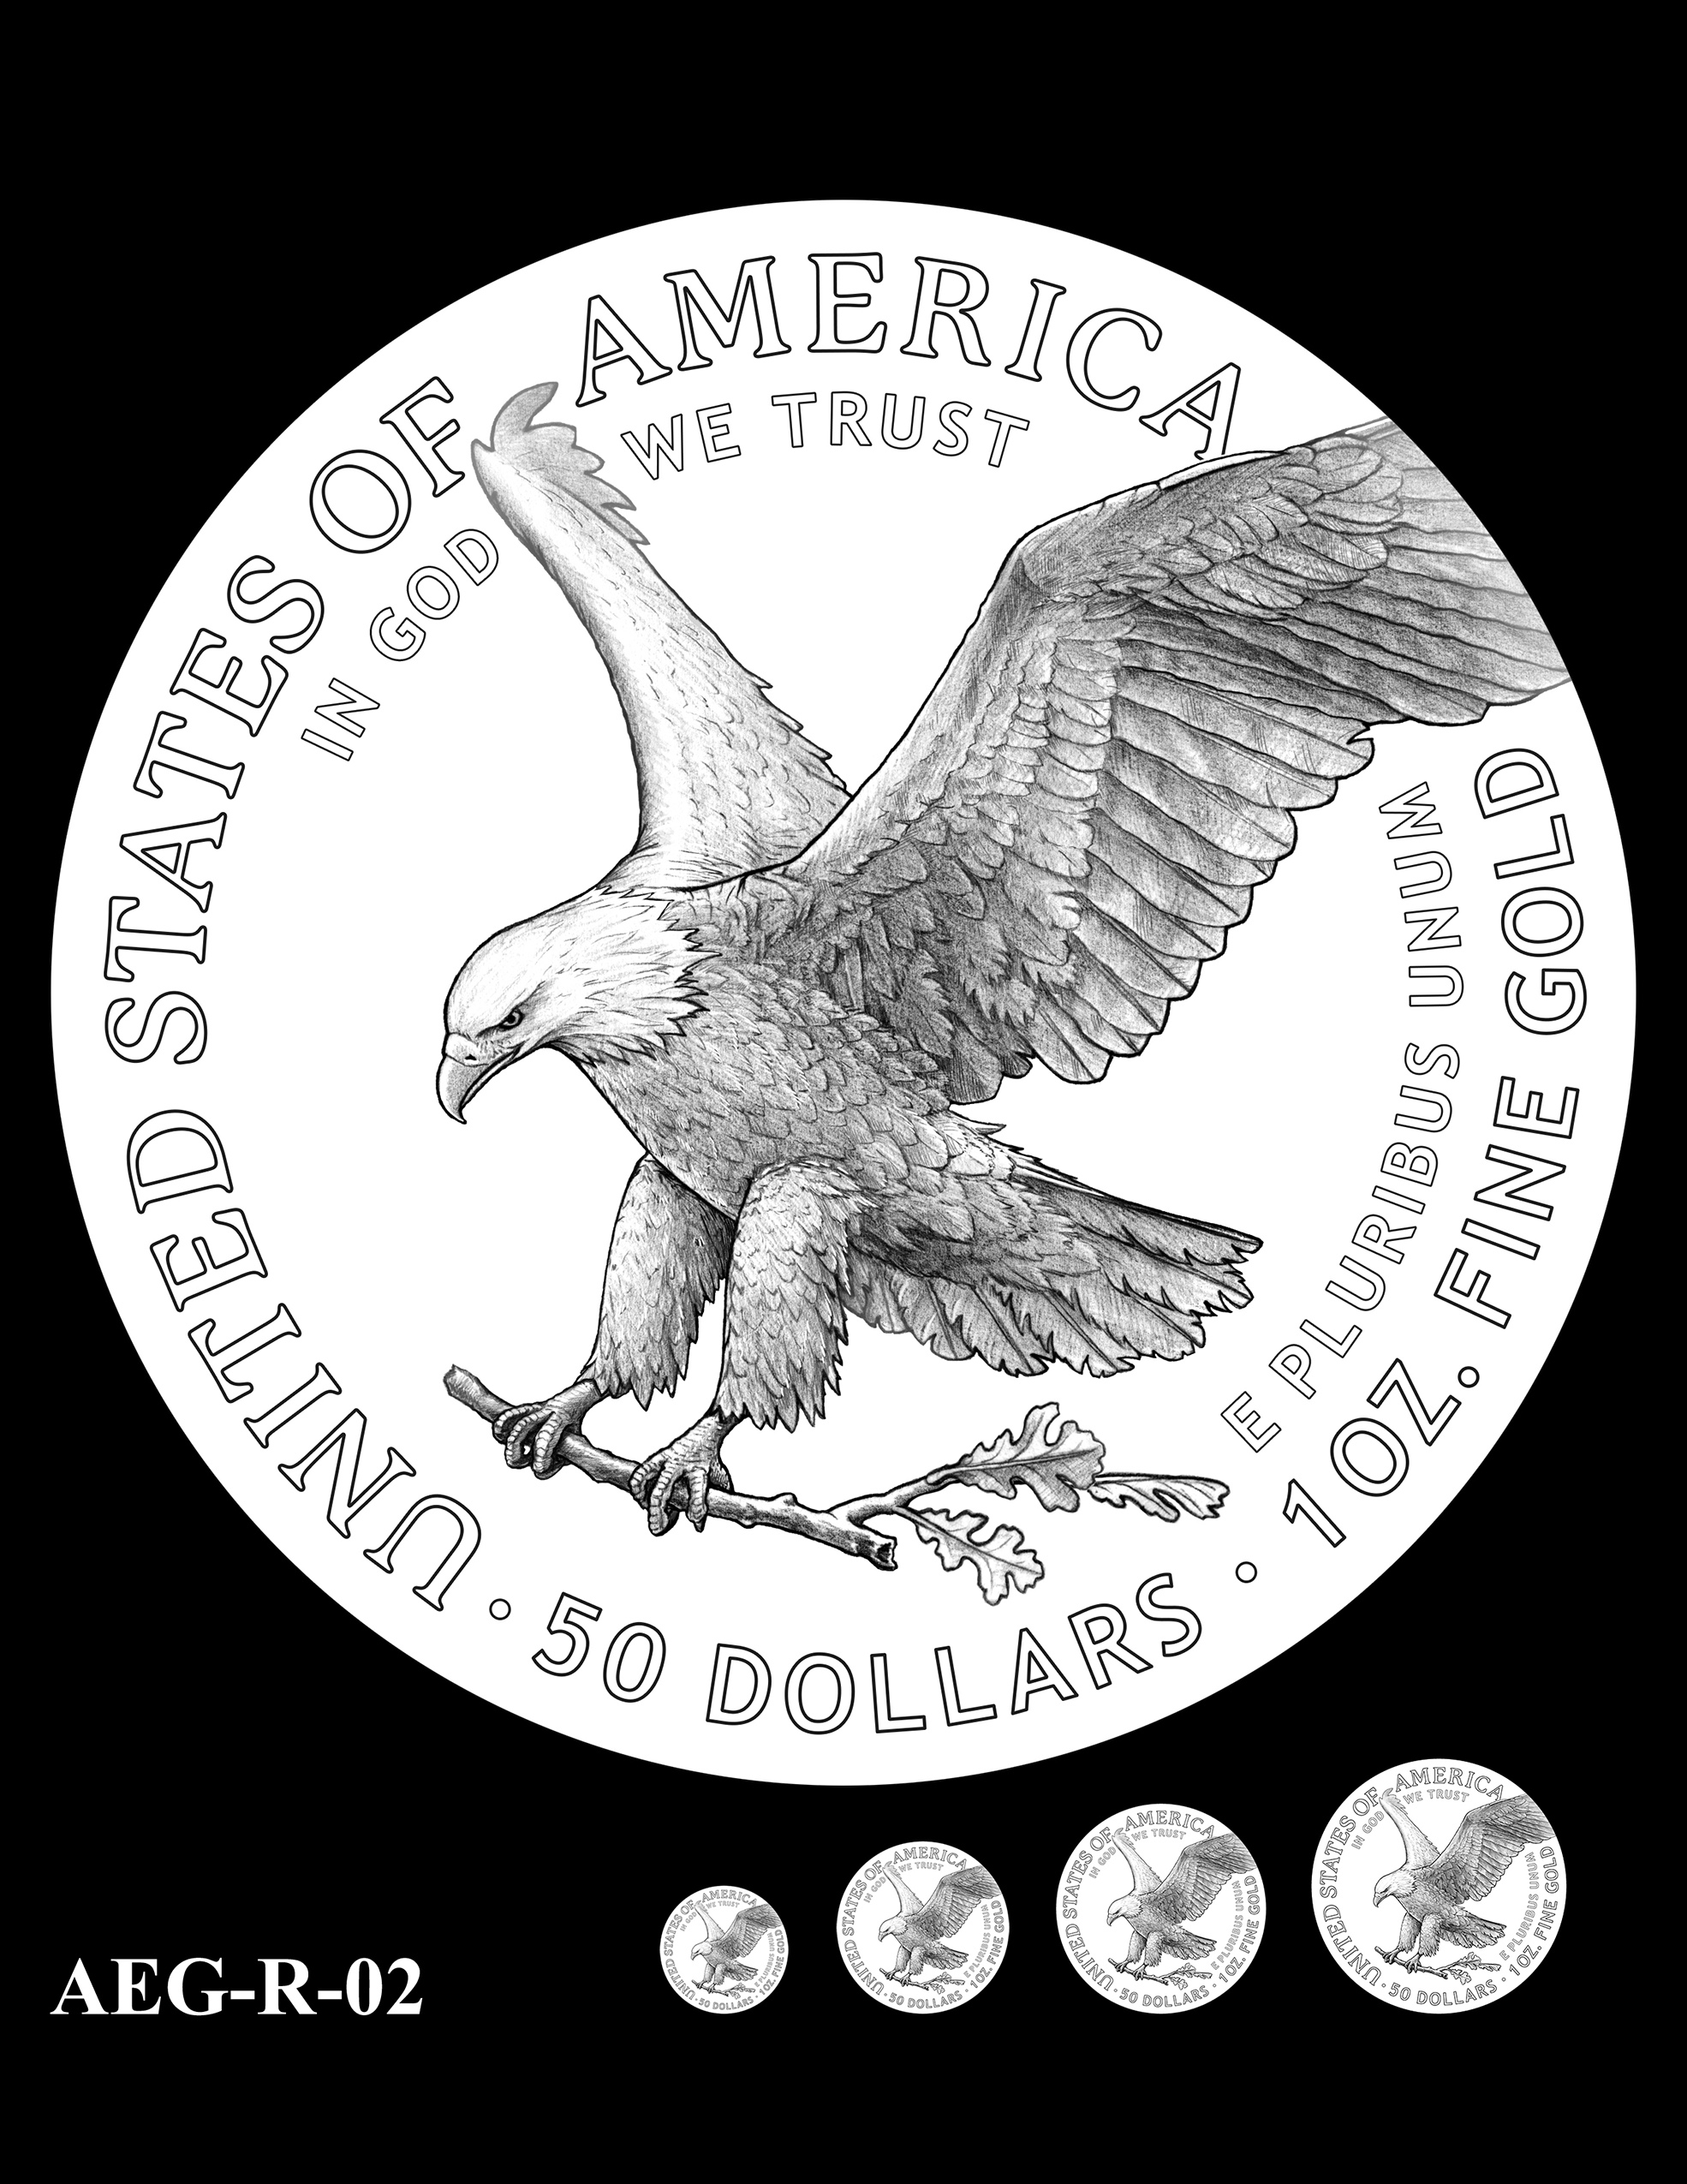 AEG-R-02 -- American Eagle Proof and Bullion Gold Coin - Reverse